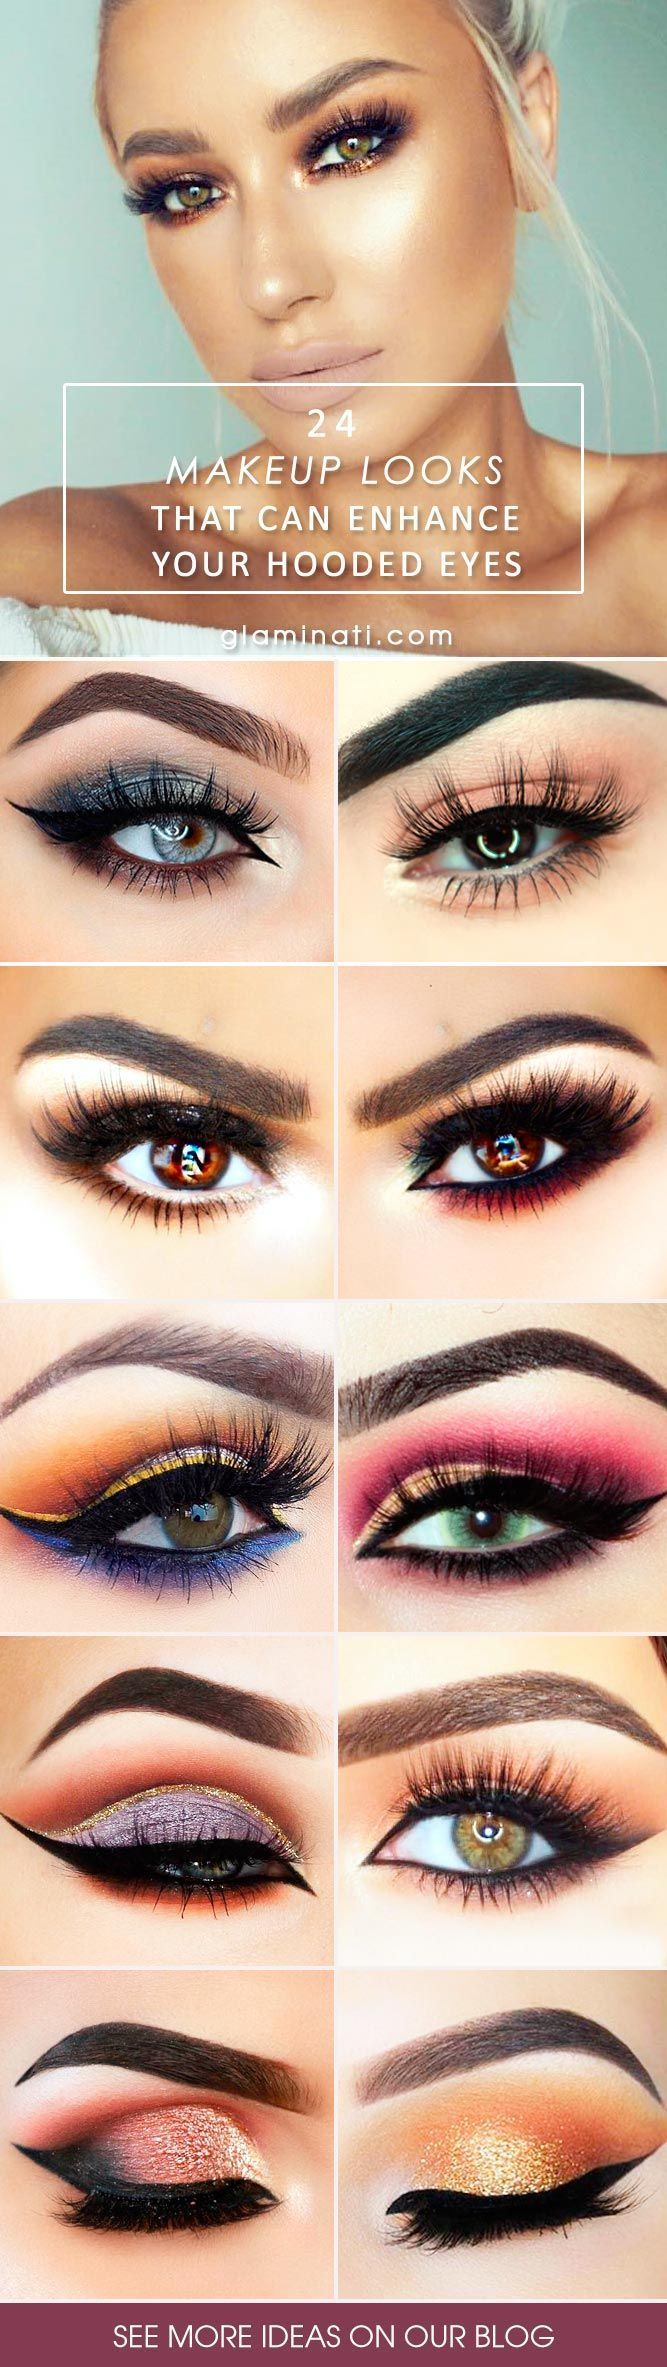 Hooded eyes are characterized by featuring an extra layer of skin drooping over the crease. As a result, the lid appears much smaller. So, if you are wondering how to enhance hooded eyes, you might want to check some of the makeup ideas that can help your eyes look beautiful anytime and anywhere. #makeup #makeuplover #hoodedeyes #Makeupstyles #hoodedeyemakeup